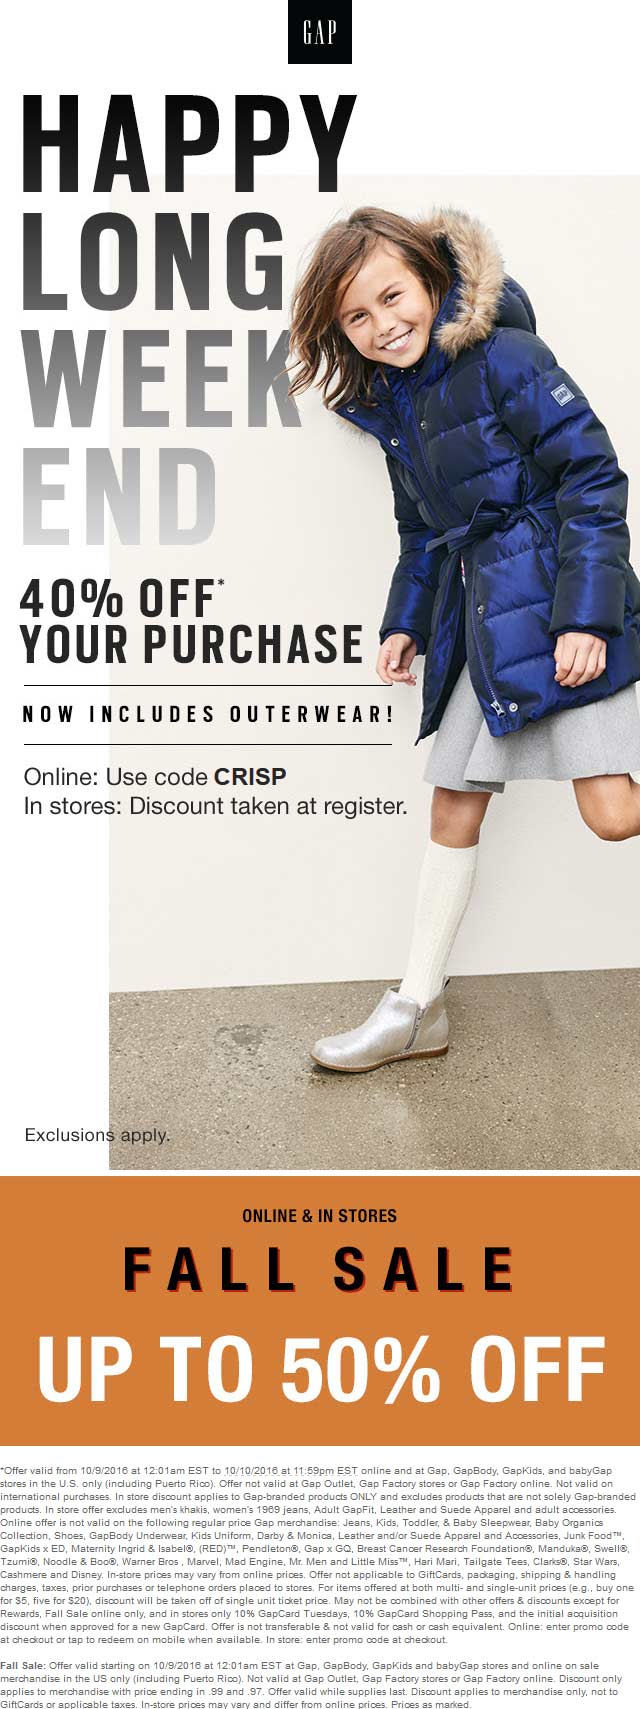 Gap.com Promo Coupon 40% off today at Gap, GapBody, GapKids, and babyGap, or online via promo code CRISP